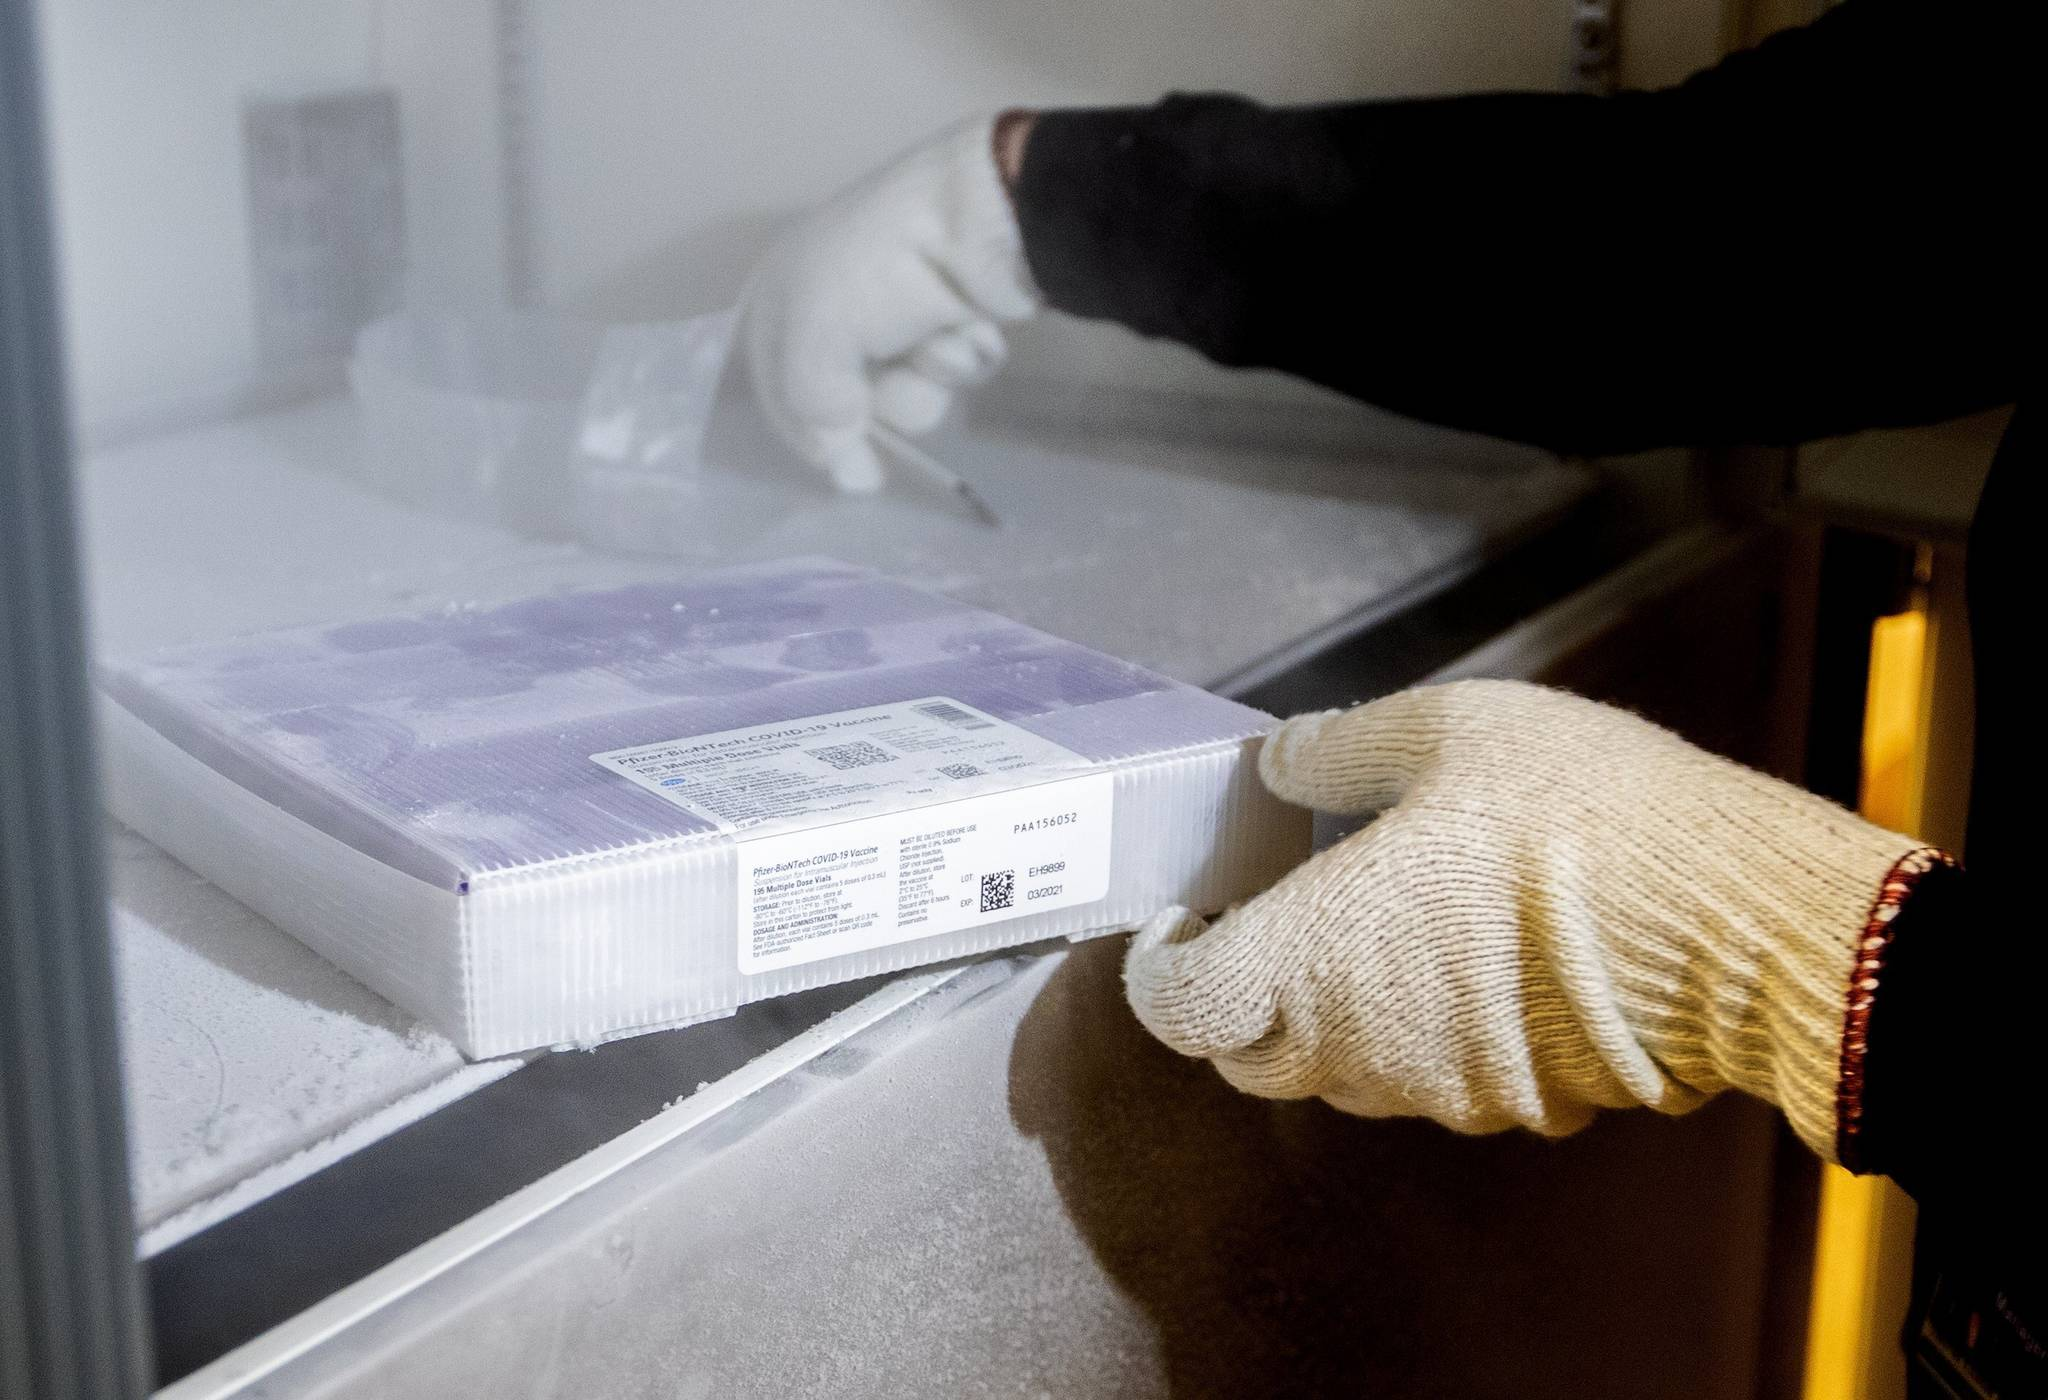 University of Washington Medical Center Pharmacy Manager Christine Meyer puts a tray of doses of the Pfizer-BioNTech COVID-19 vaccine into the deep freeze after the vaccine arrived at the University of Washington Medical Center's Montlake campus Monday, Dec. 14, 2020, in Seattle. (Mike Siegel/The Seattle Times via AP, Pool)